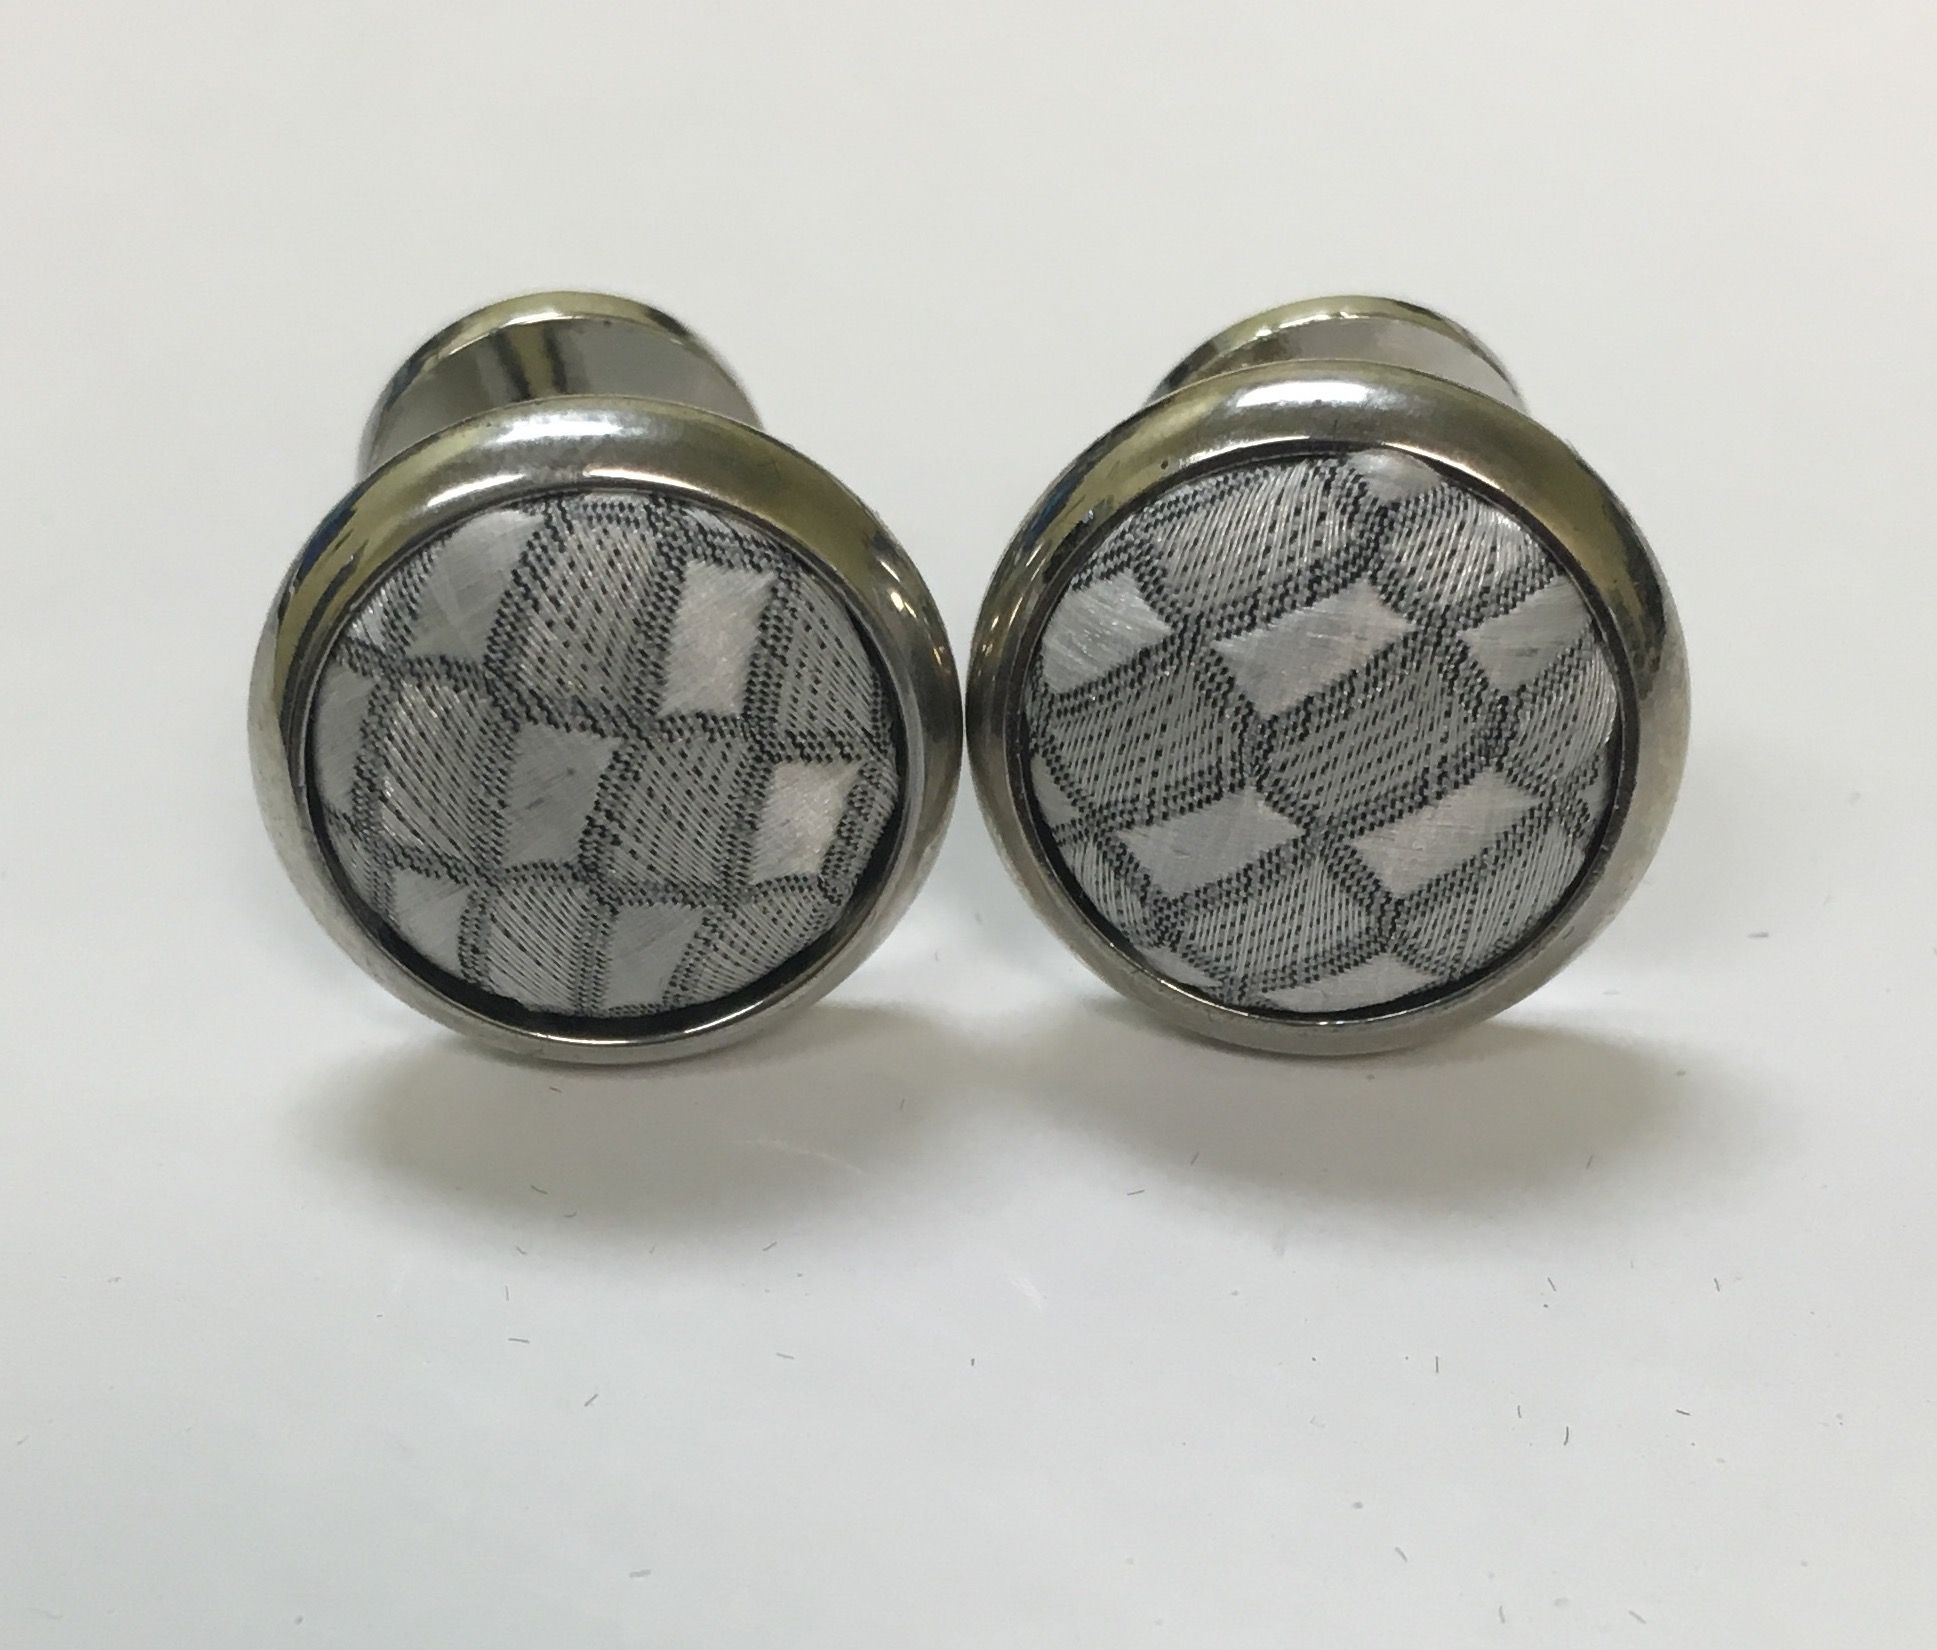 *2 Pc. Exquisite Fabric Cufflinks - Silver Gray